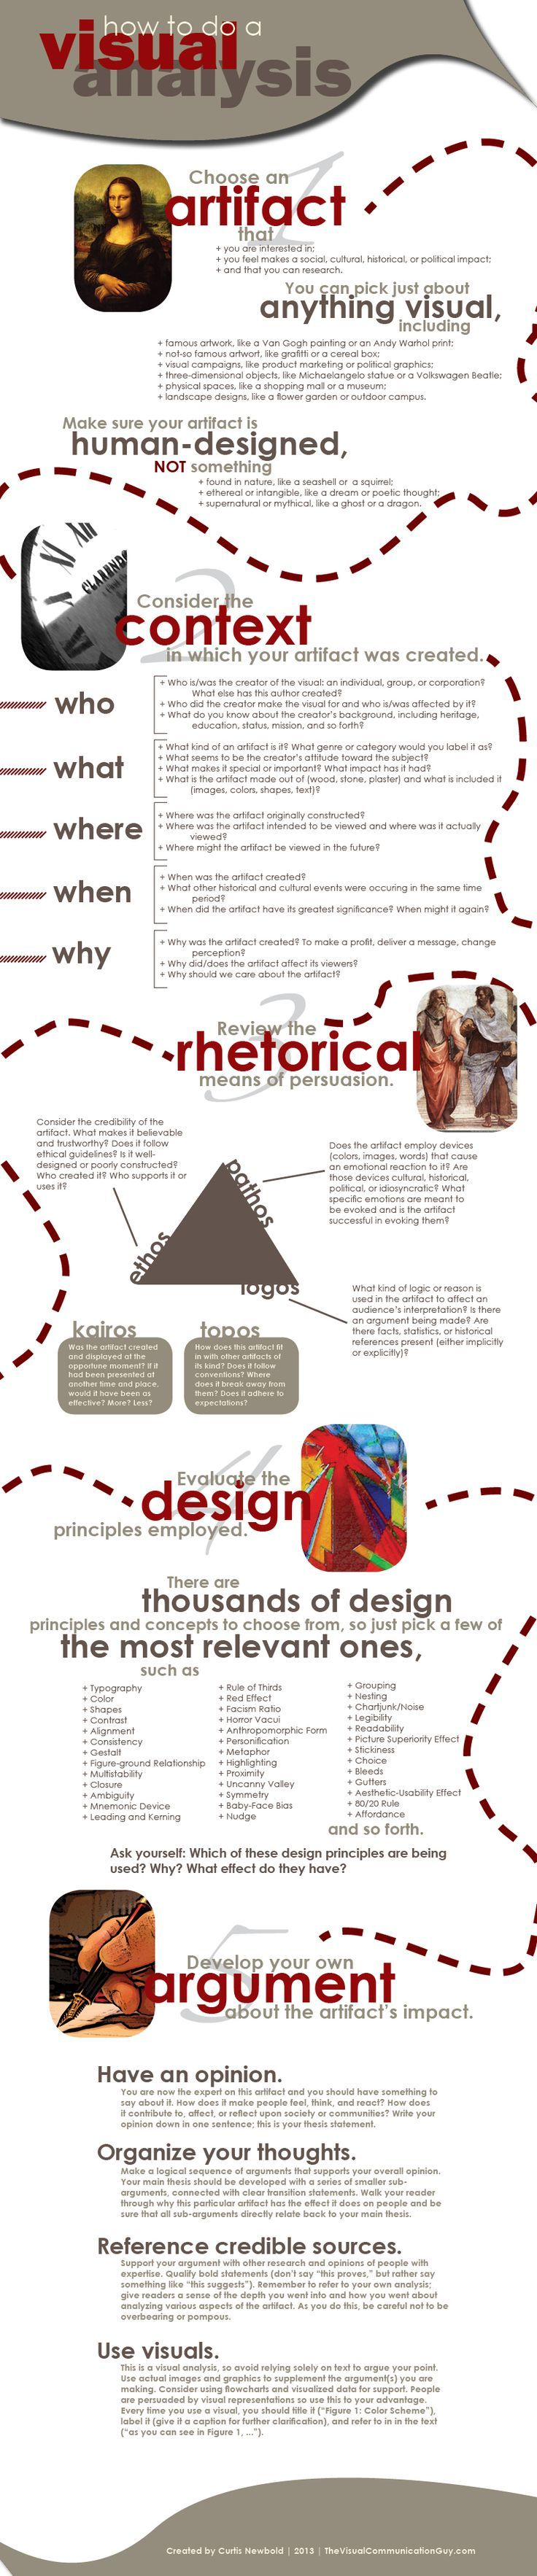 cool How to do a Visual Analysis- a 5 Step Process Infographic: It's been my experi...